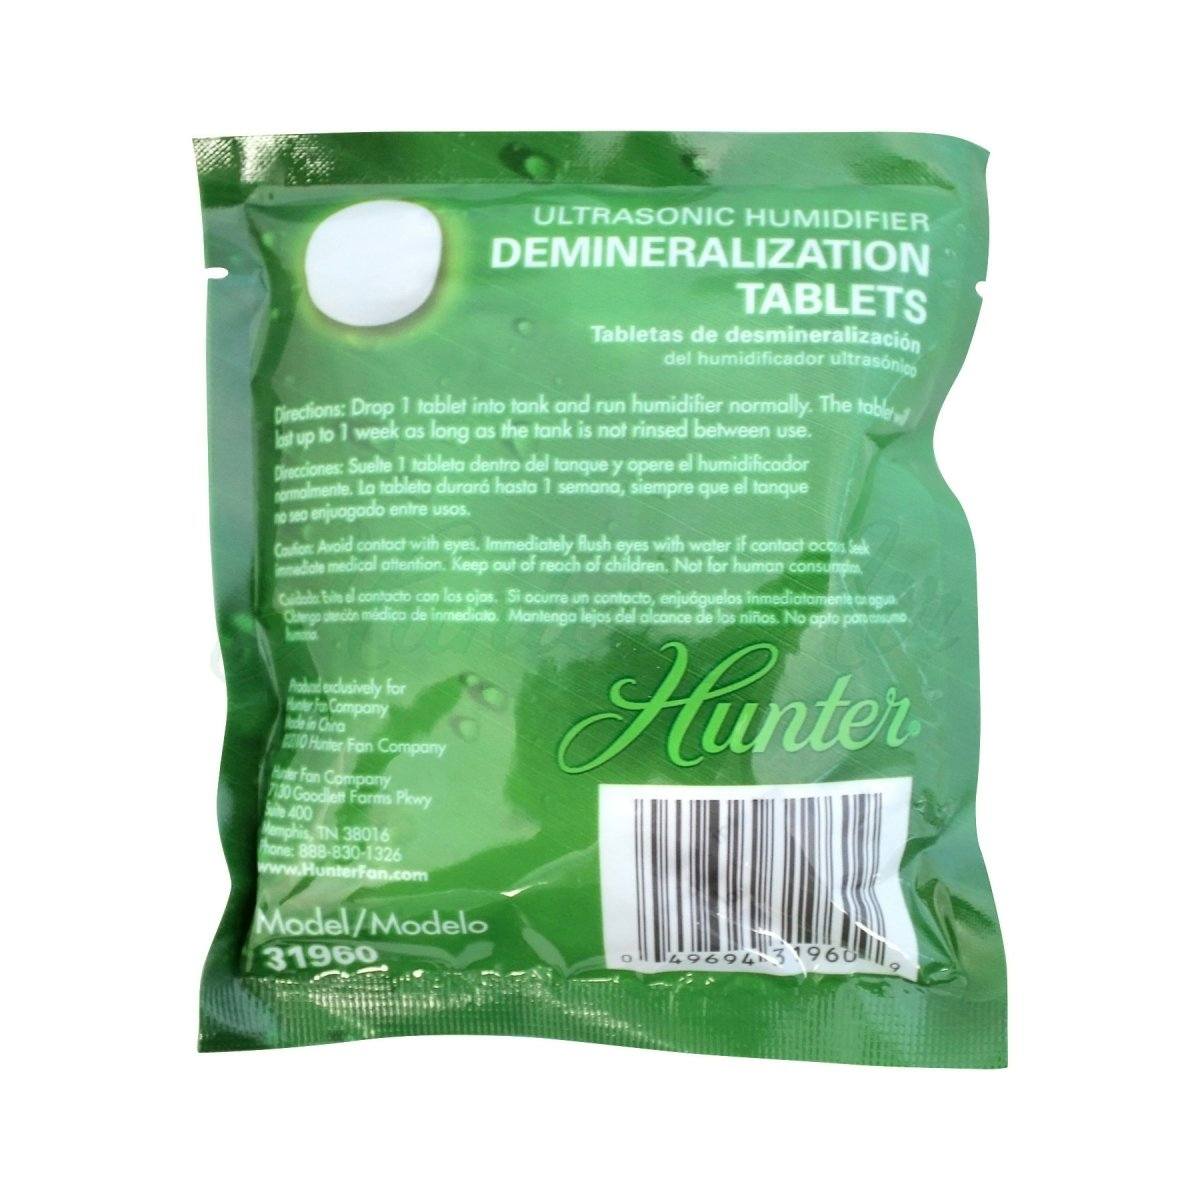 Hunter 31960 Demineralization Tablet for 31004 Humidifier by Hunter Home Comfort (Image #2)